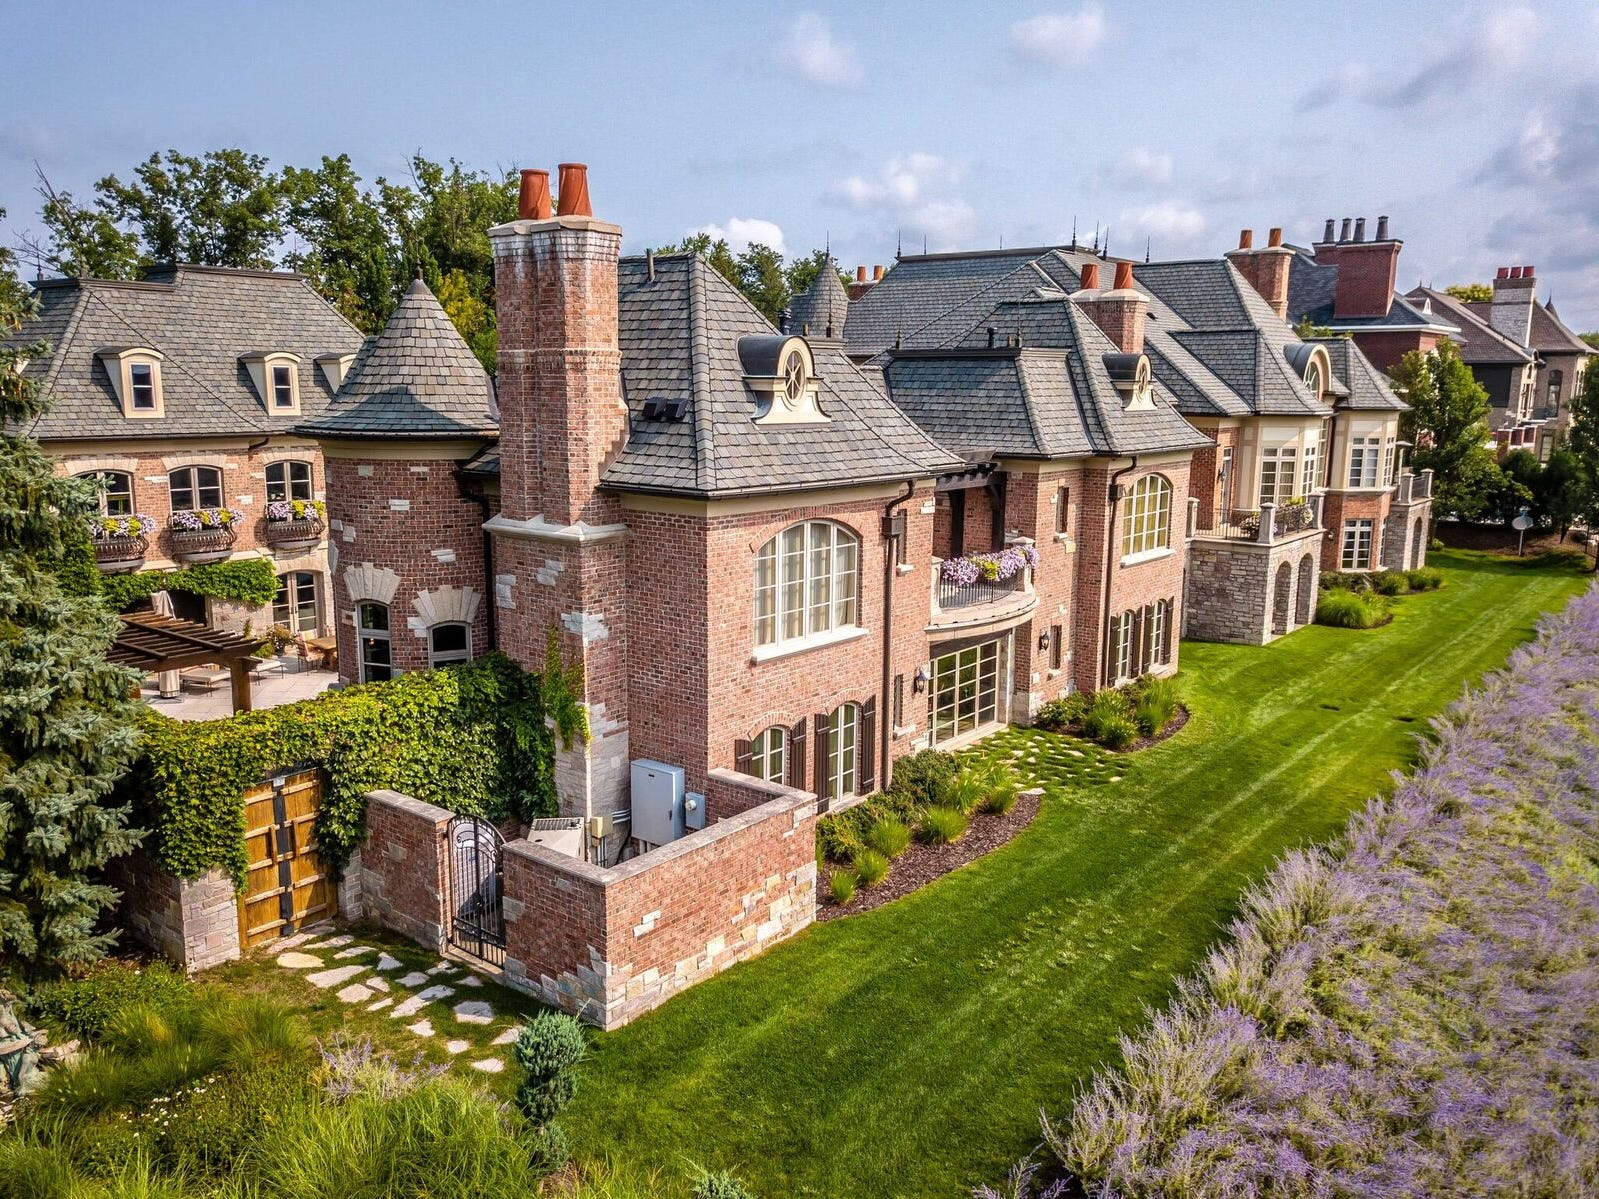 The house is listed for $10.55 million.